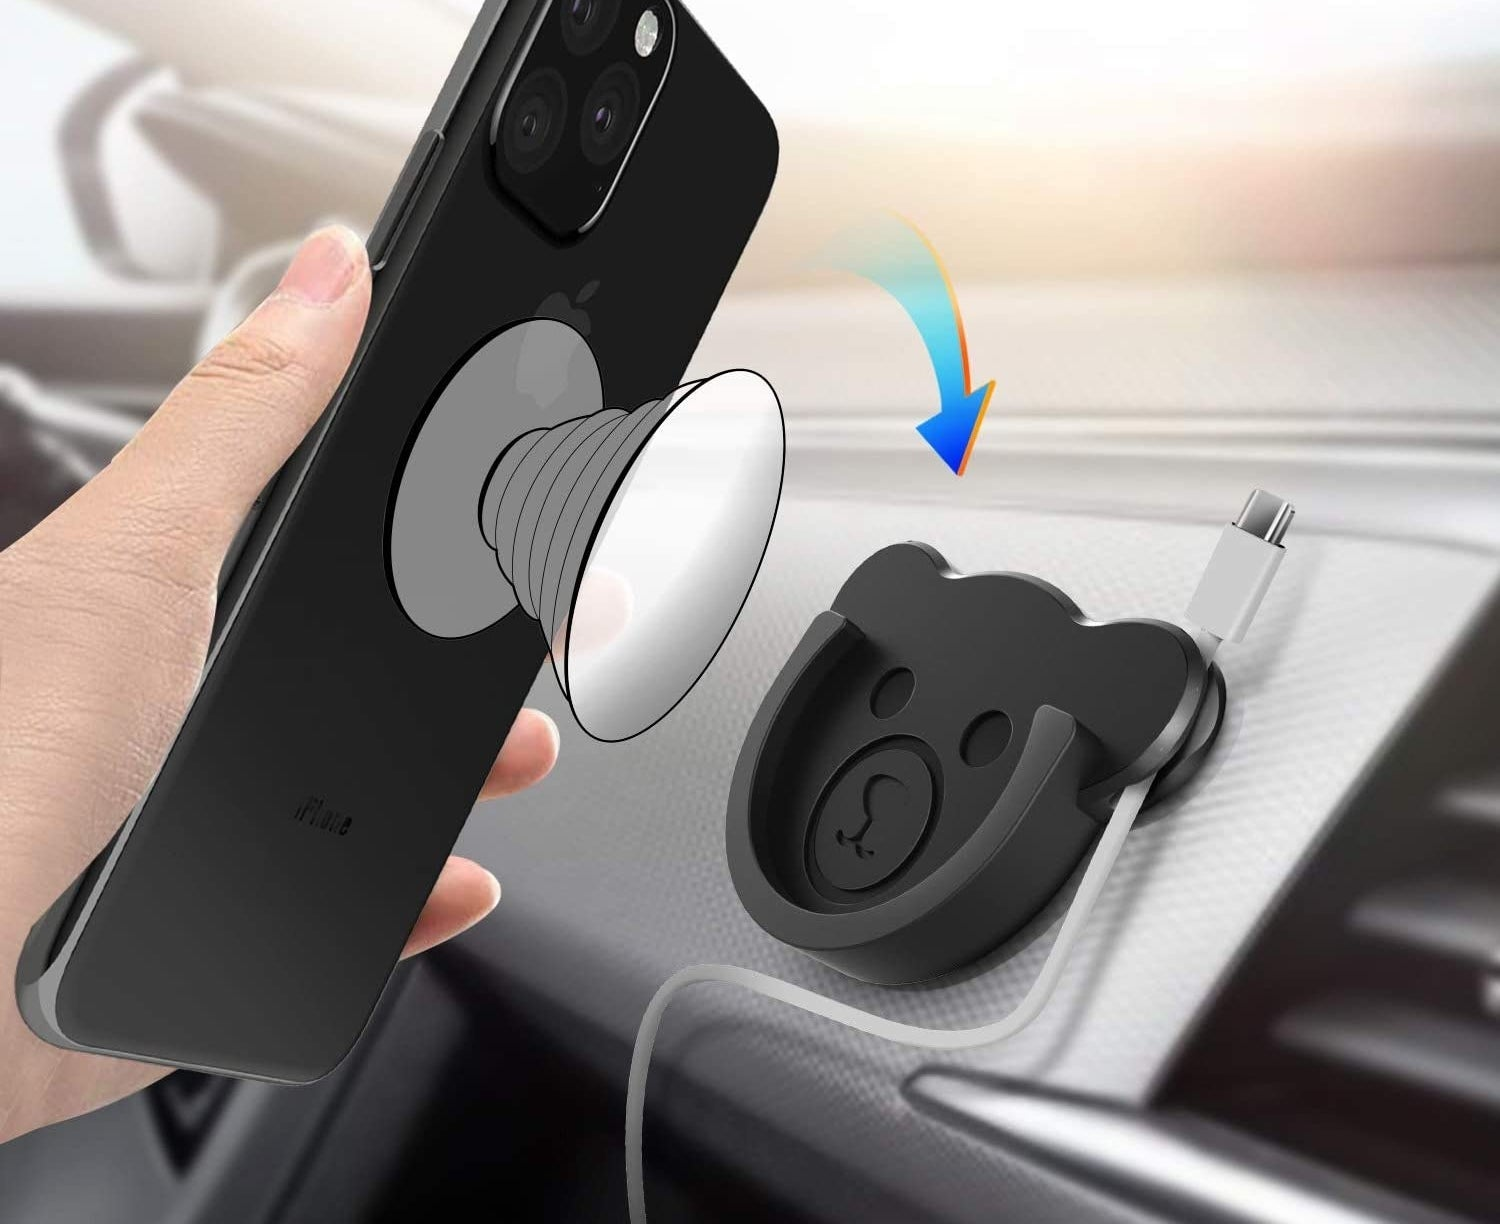 A person placing their phone socket into the bear-shaped phone mount